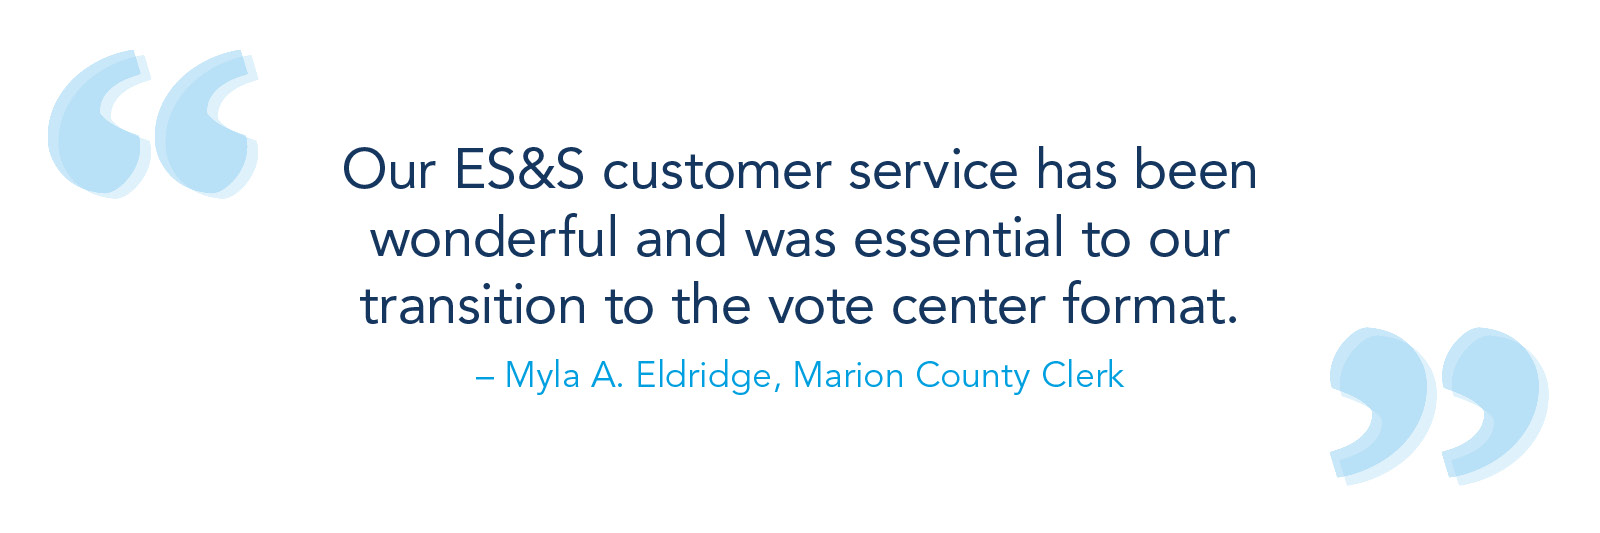 Our ES&S customer service has been wonderful and was essential to our transition to the vote center format.